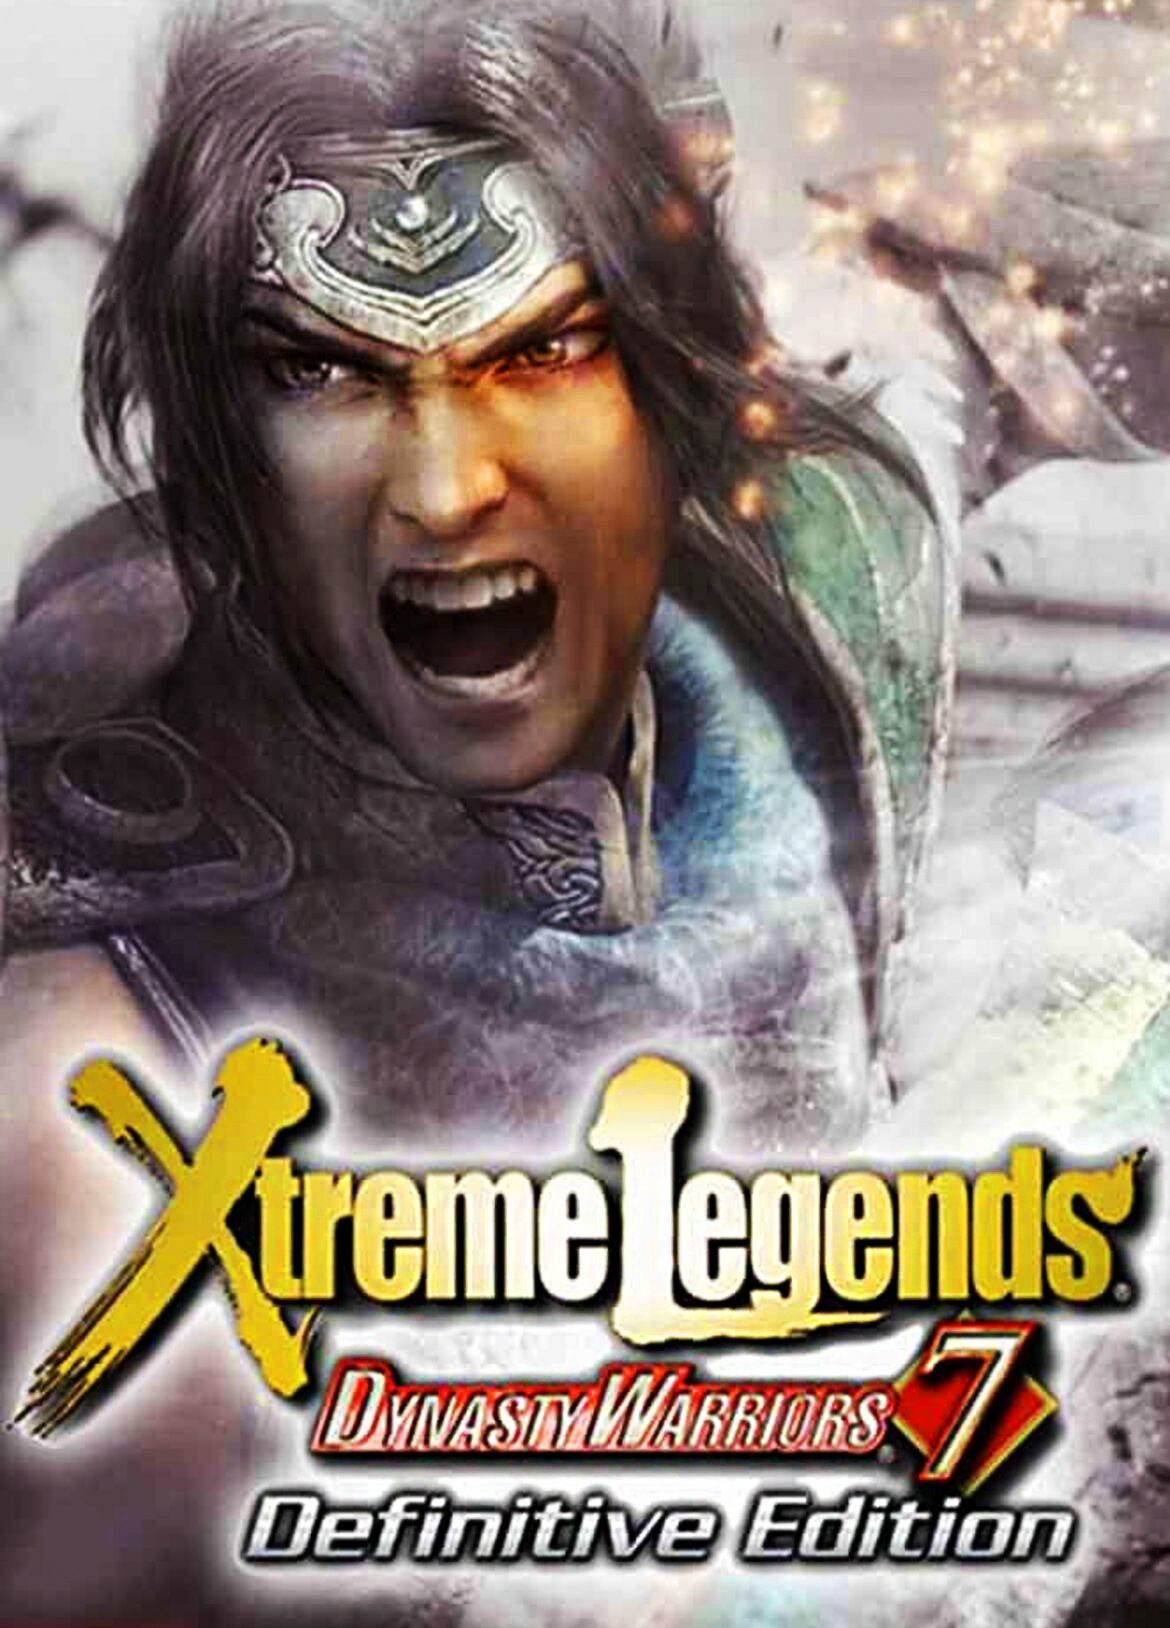 game-steam-dynasty-warriors-7-xtreme-legends-definitive-edition-cover-9342601